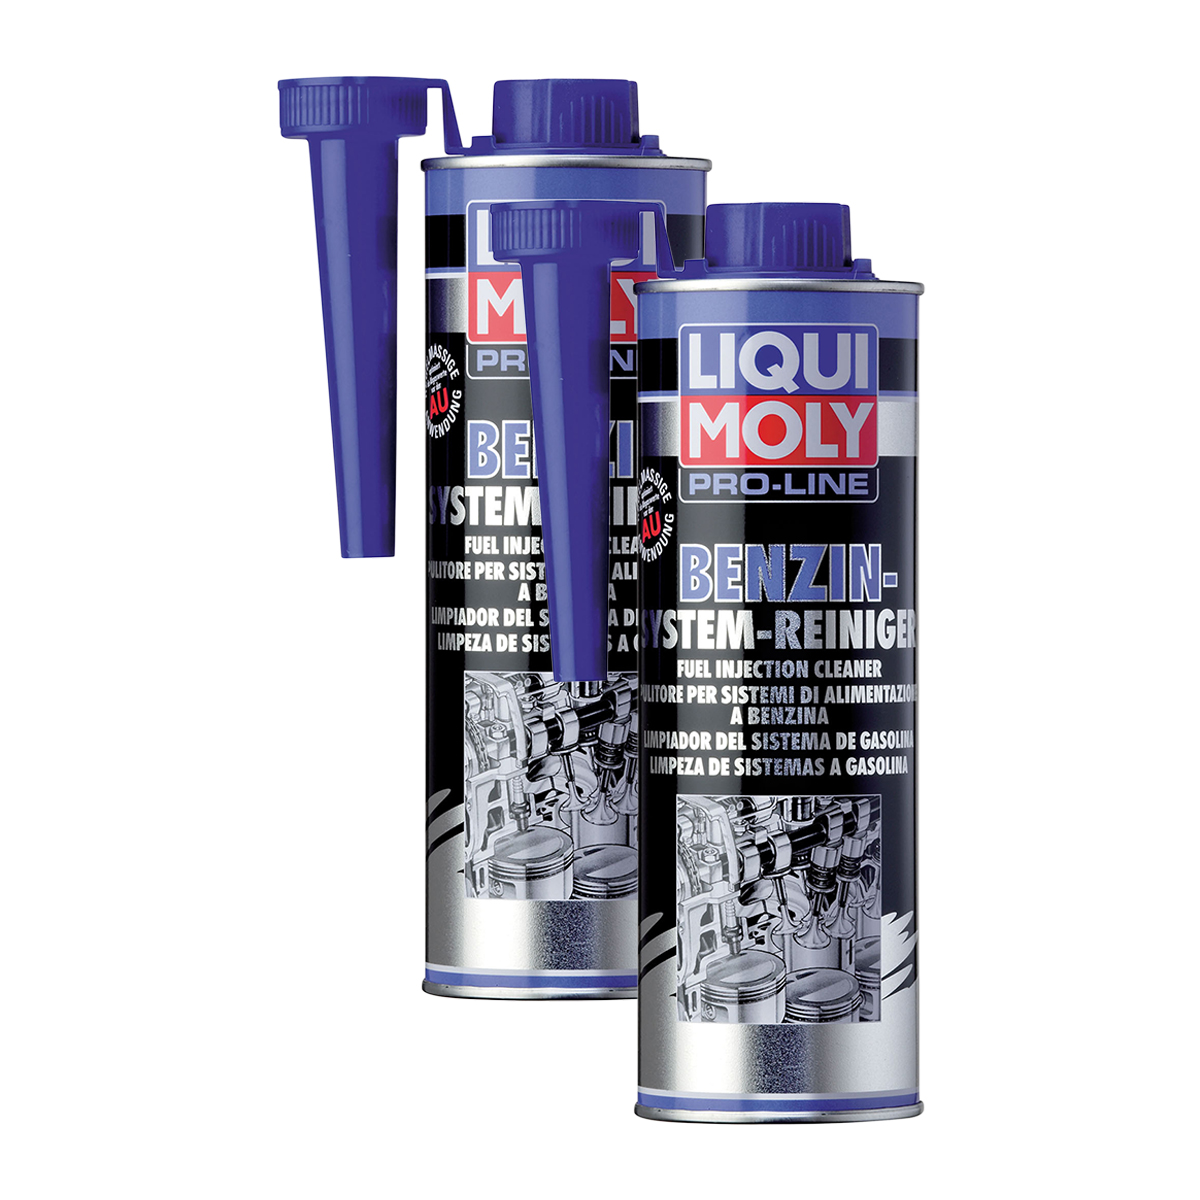 2x liqui moly 5153 pro line benzin system reiniger kraftstoff additiv 500ml. Black Bedroom Furniture Sets. Home Design Ideas